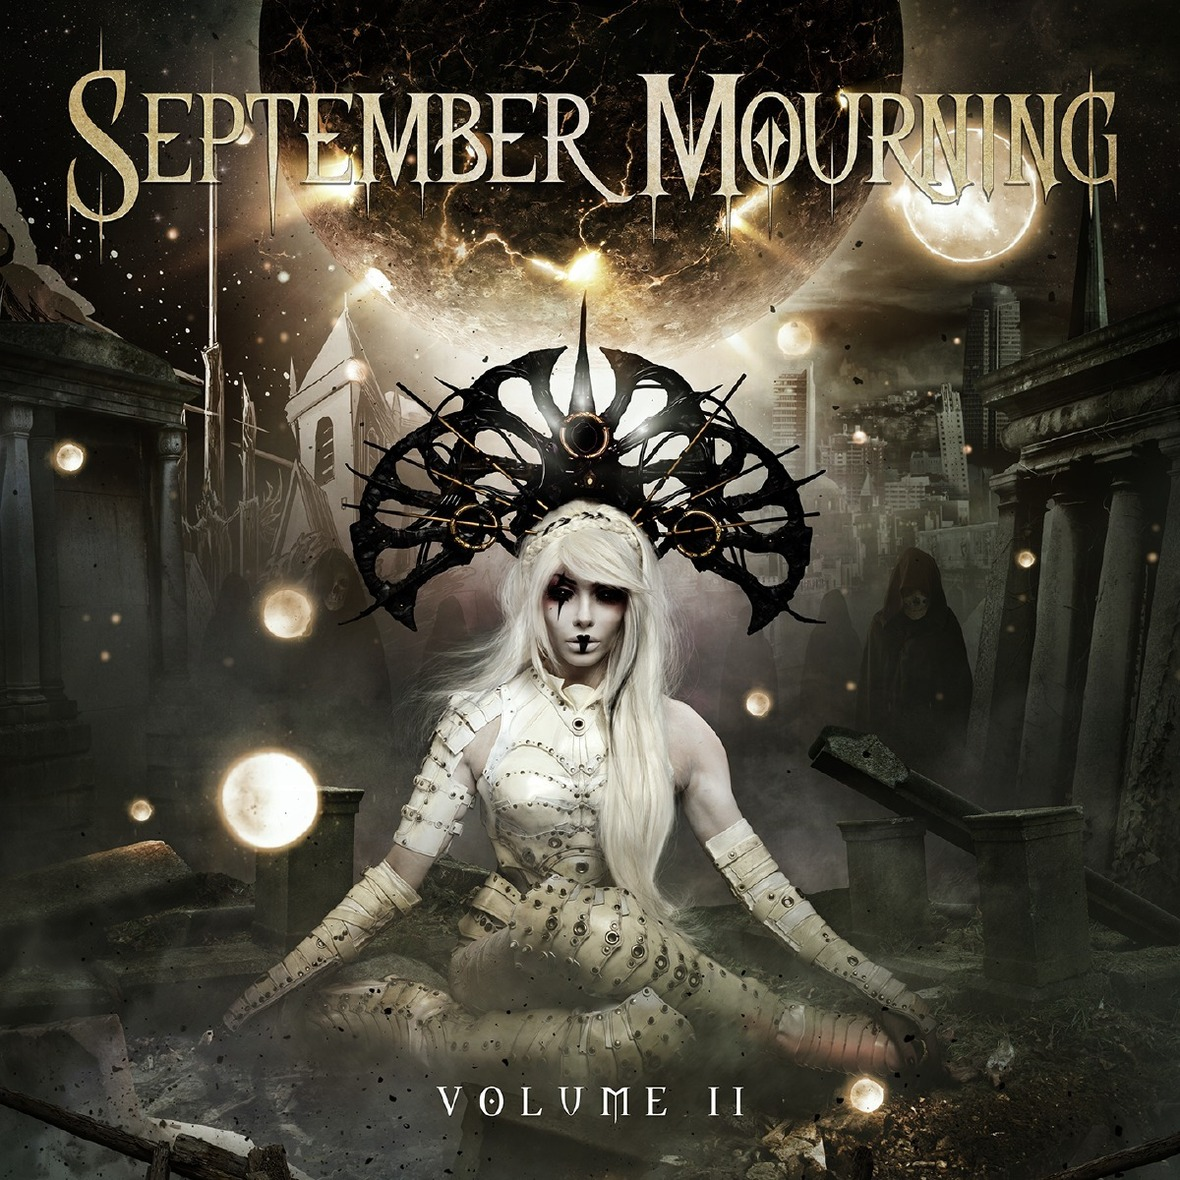 September Mourning V2